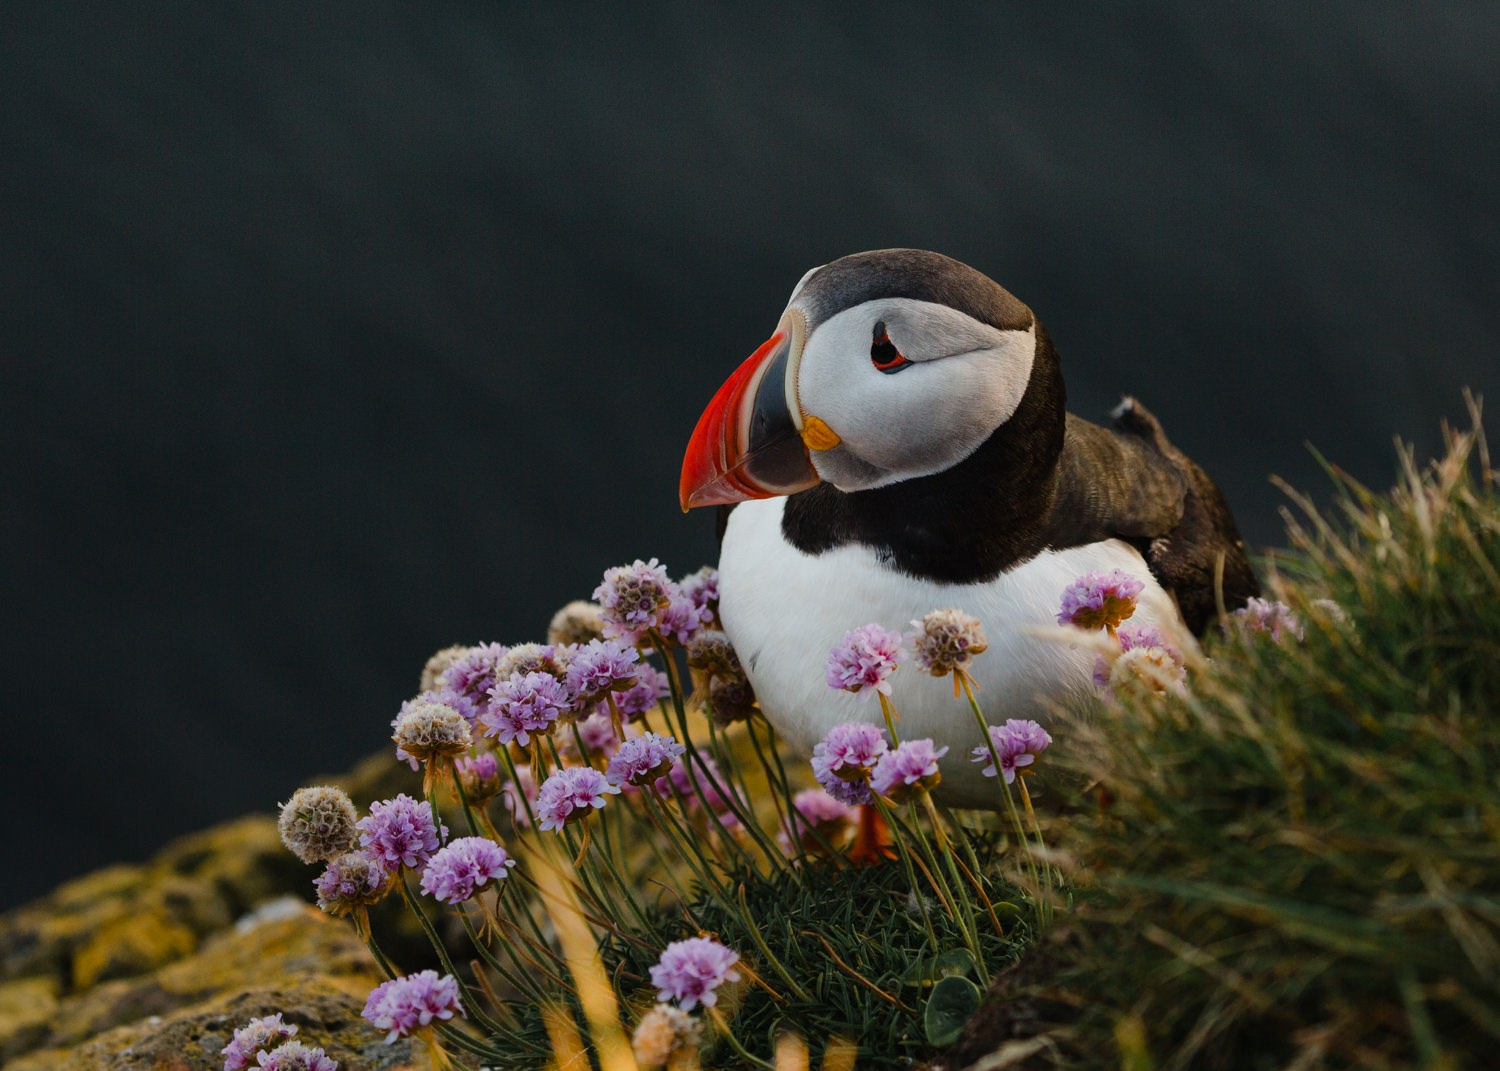 iceland-puffin-westfjords-travel-photographer-cameron-zegers.jpg